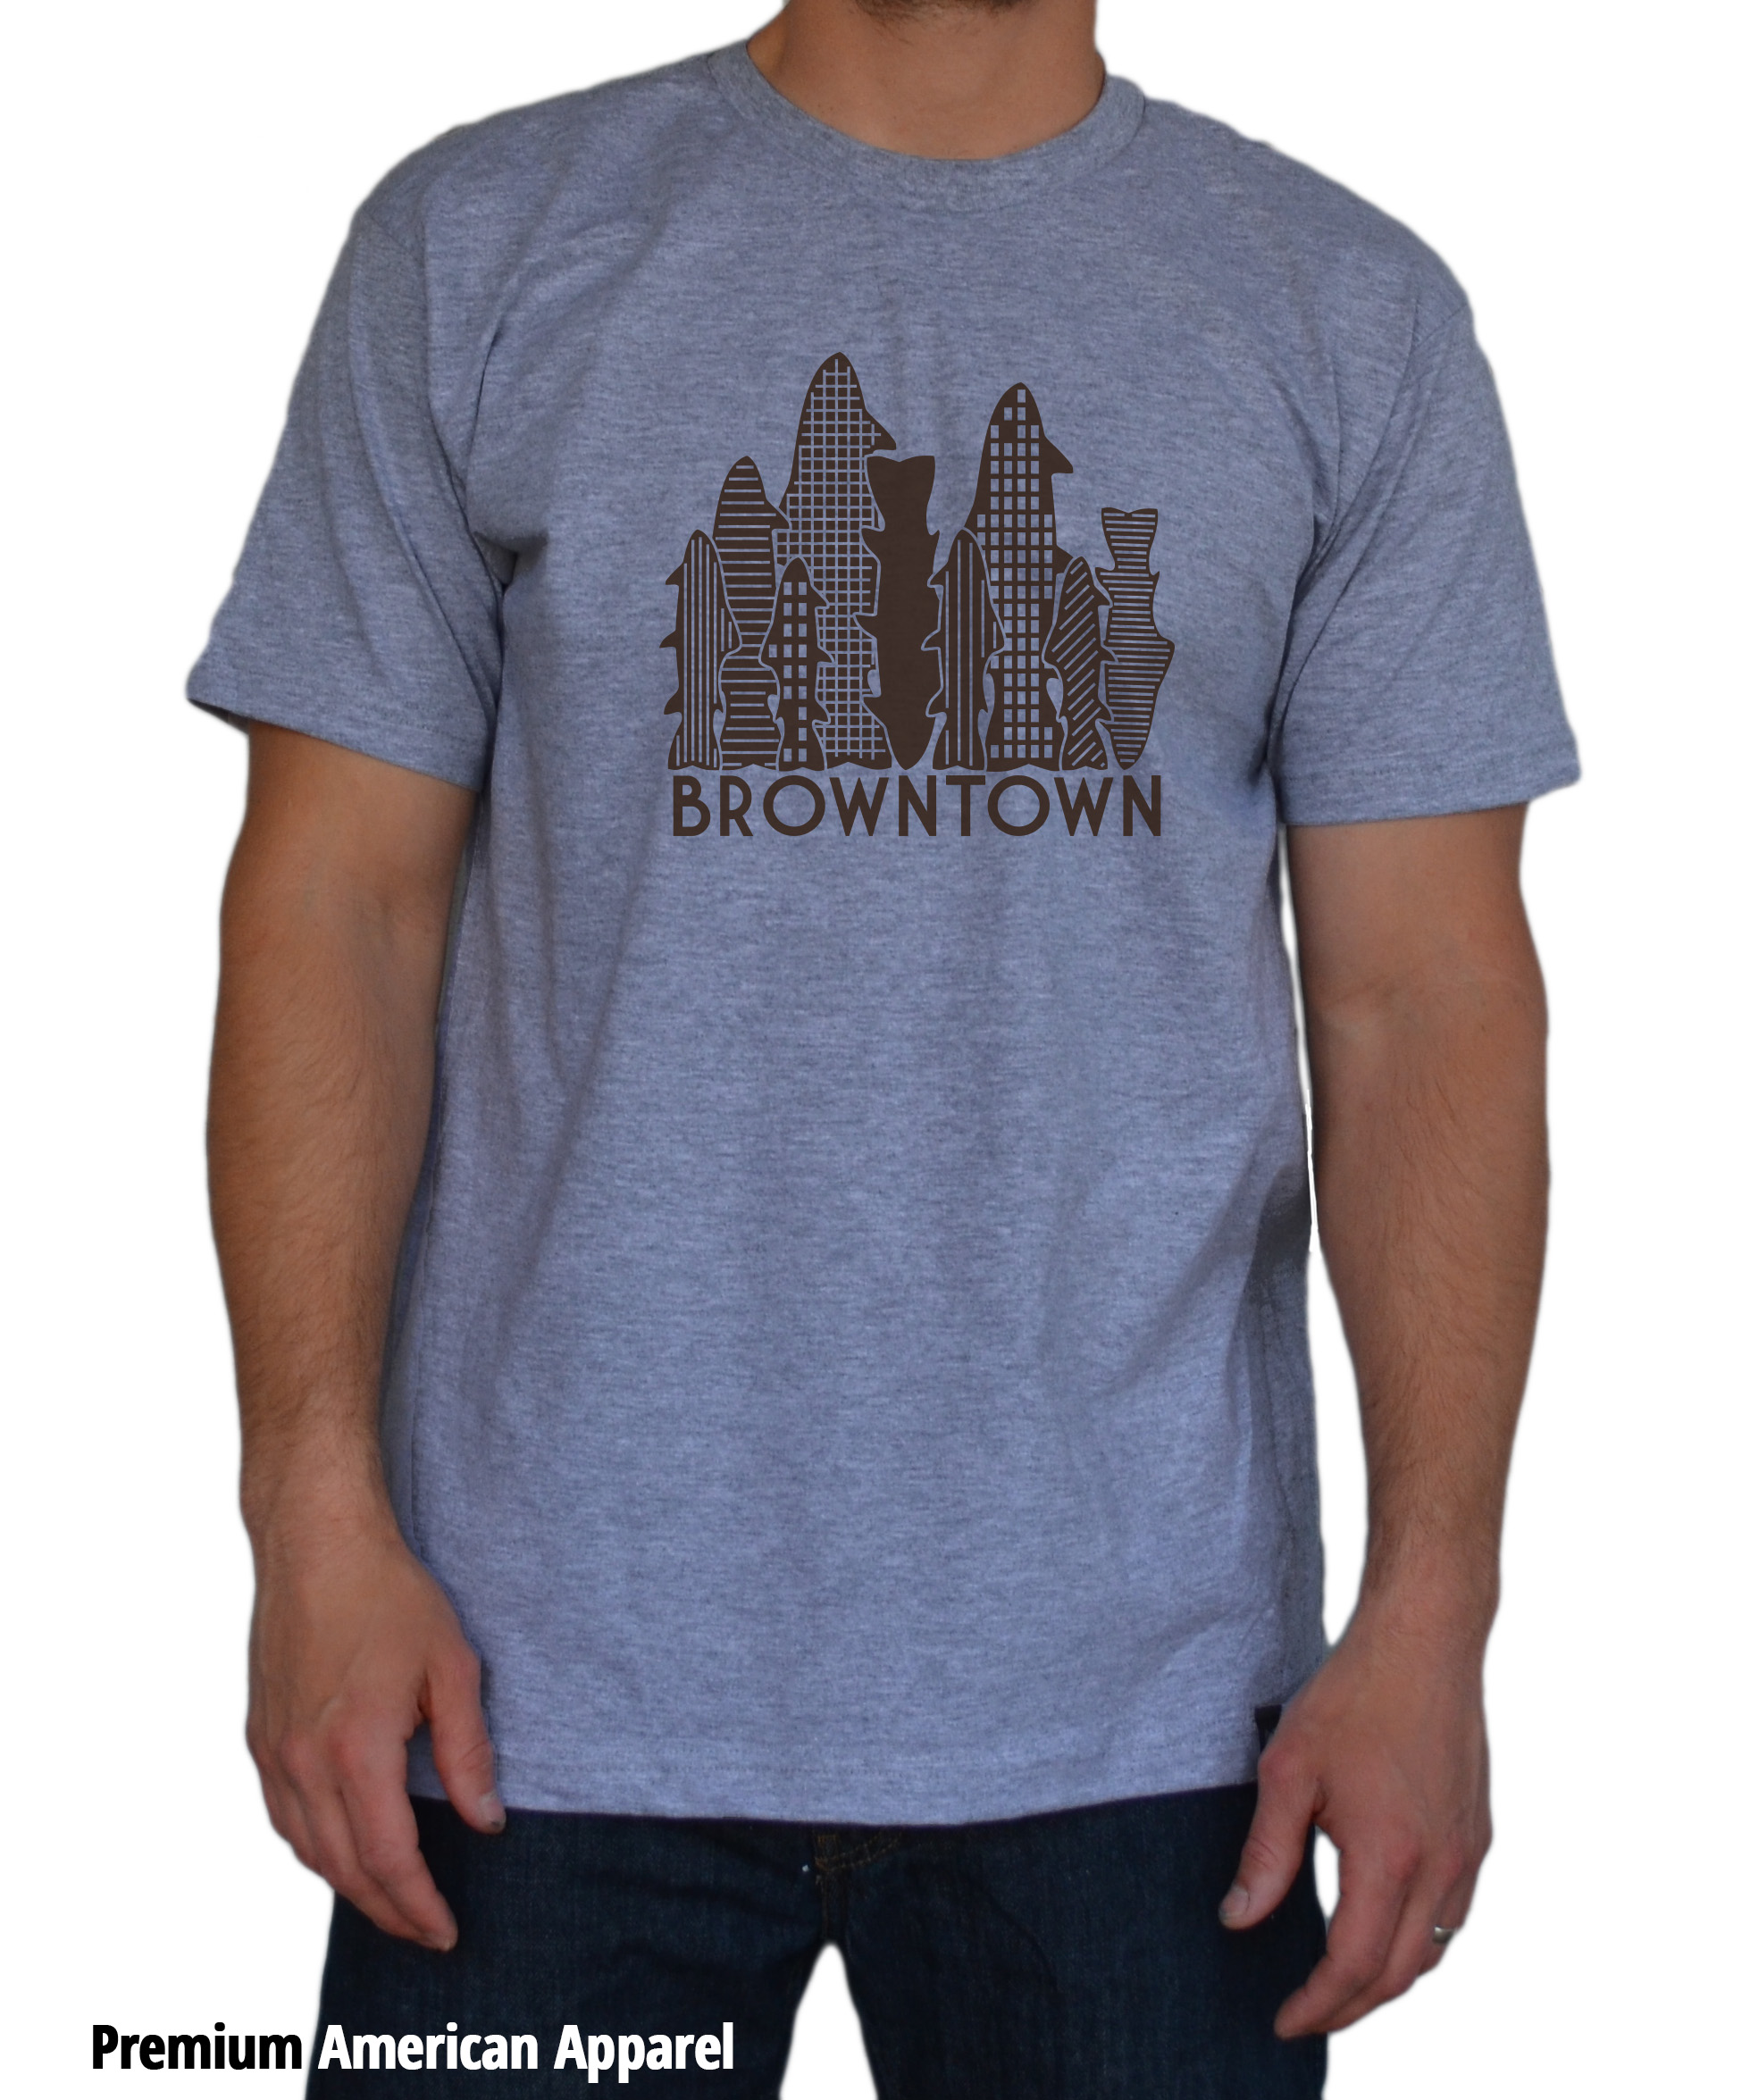 Browntown t shirt the fly trout fly fishing t shirts for Women s fishing t shirts